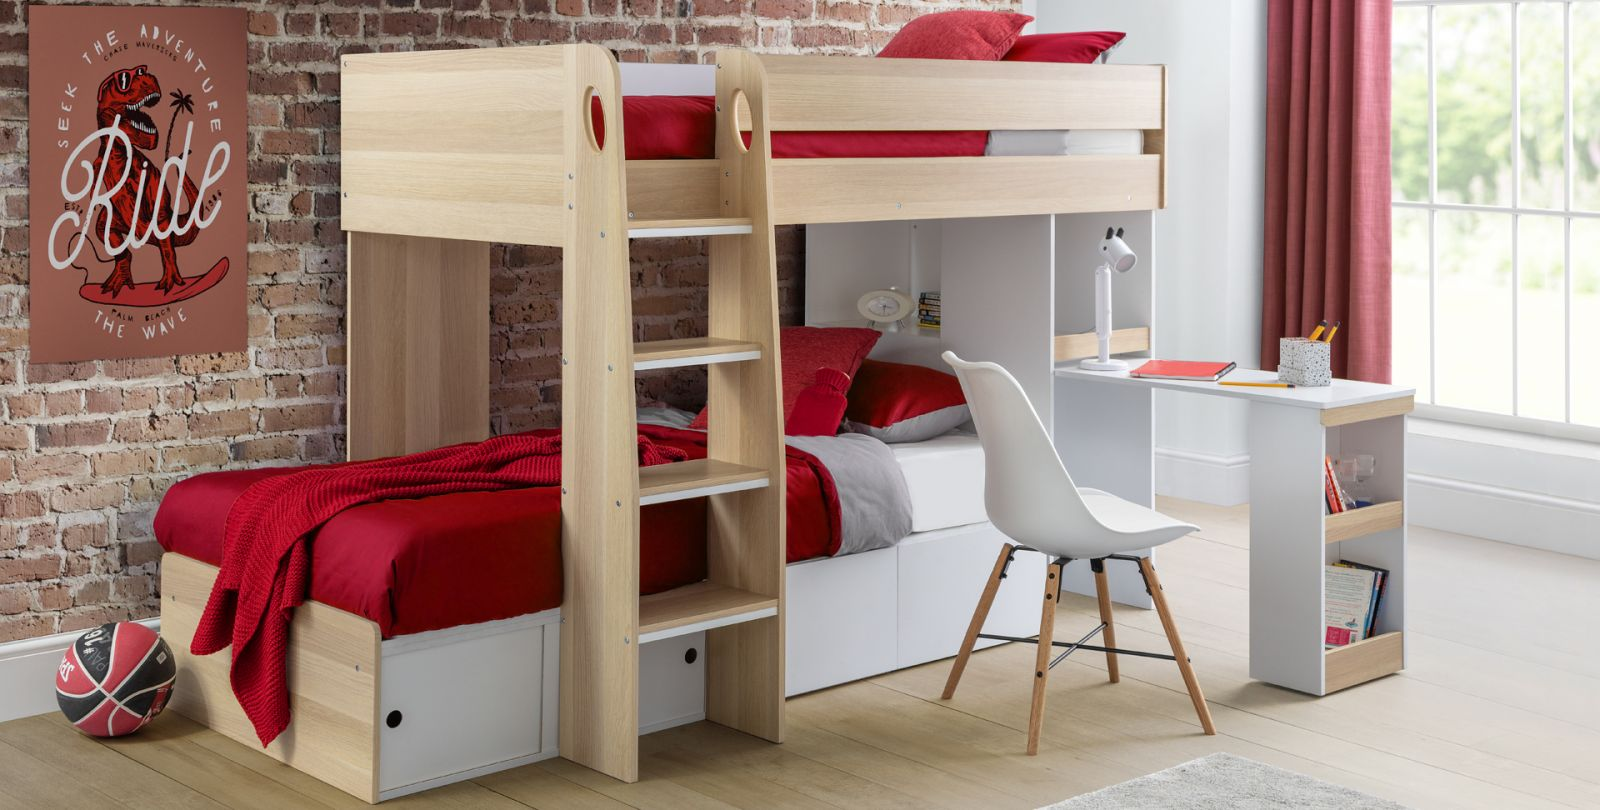 Picture of: Bunk Beds Julian Bowen Limited